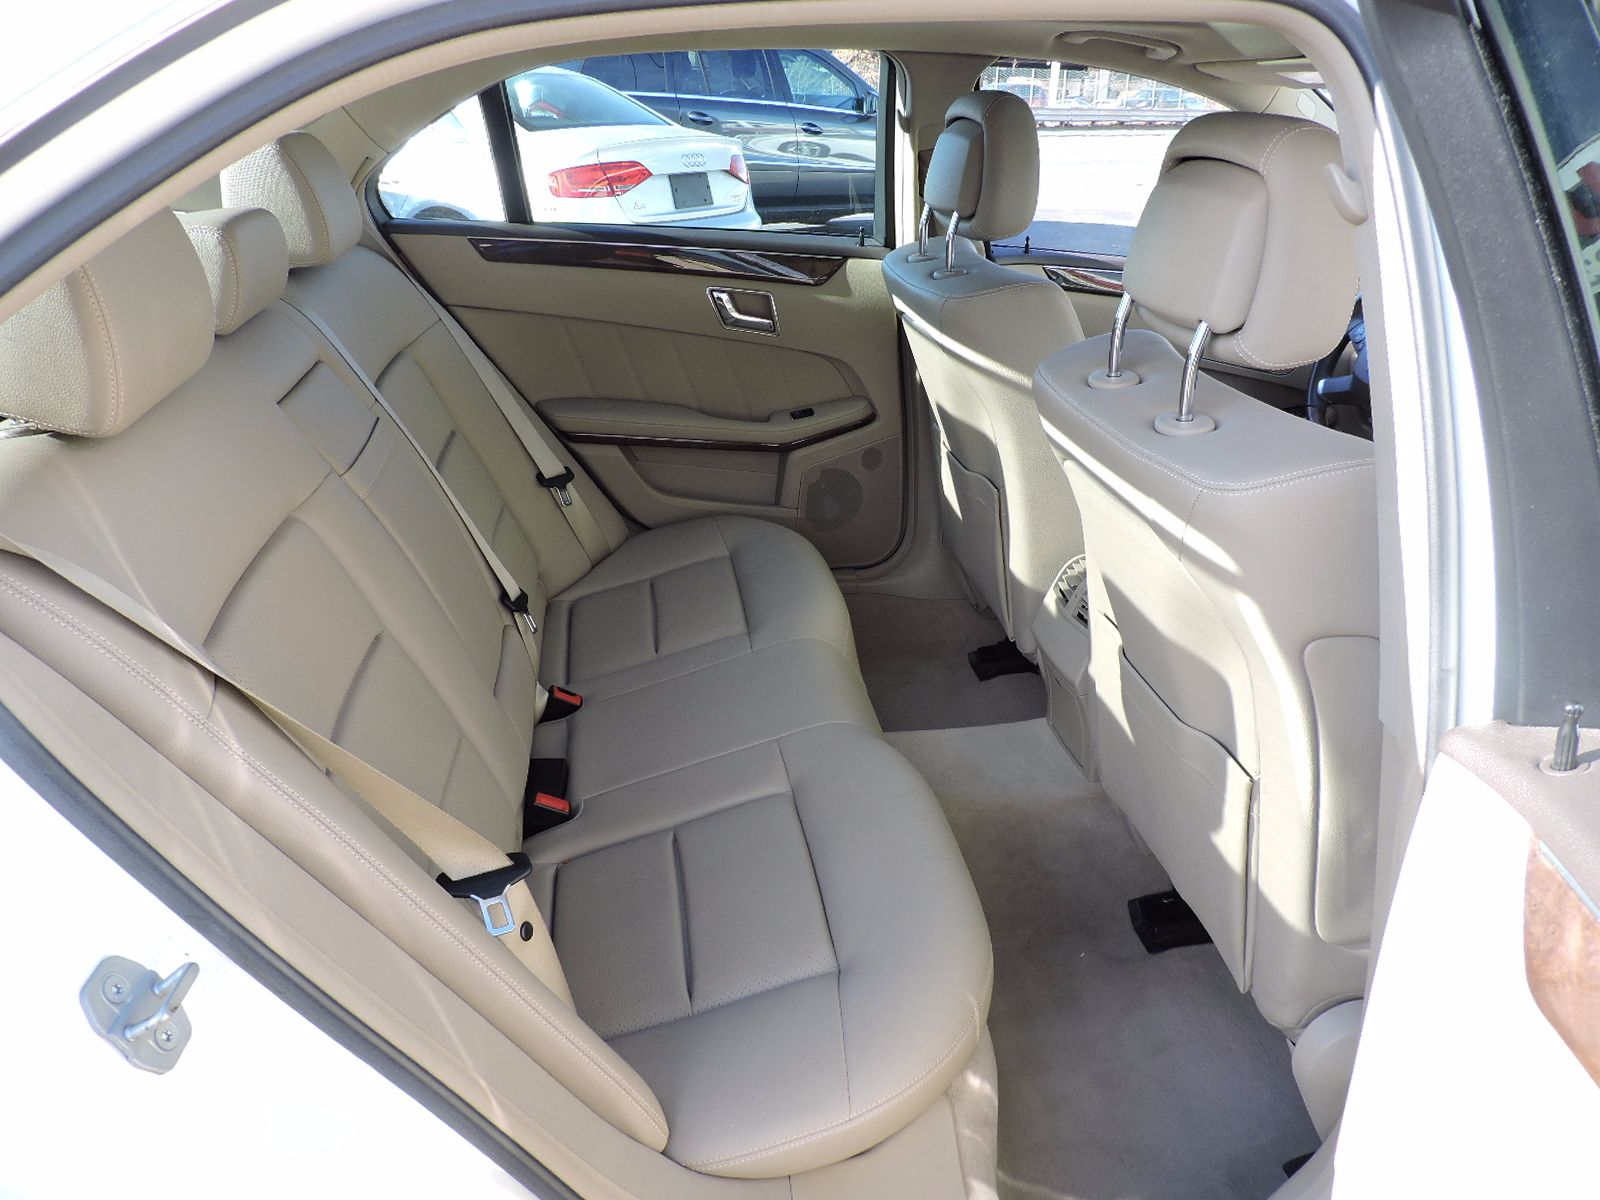 2010 Mercedes-Benz E 350 - Luxury - 4Matic - All Wheel Drive - Navigation